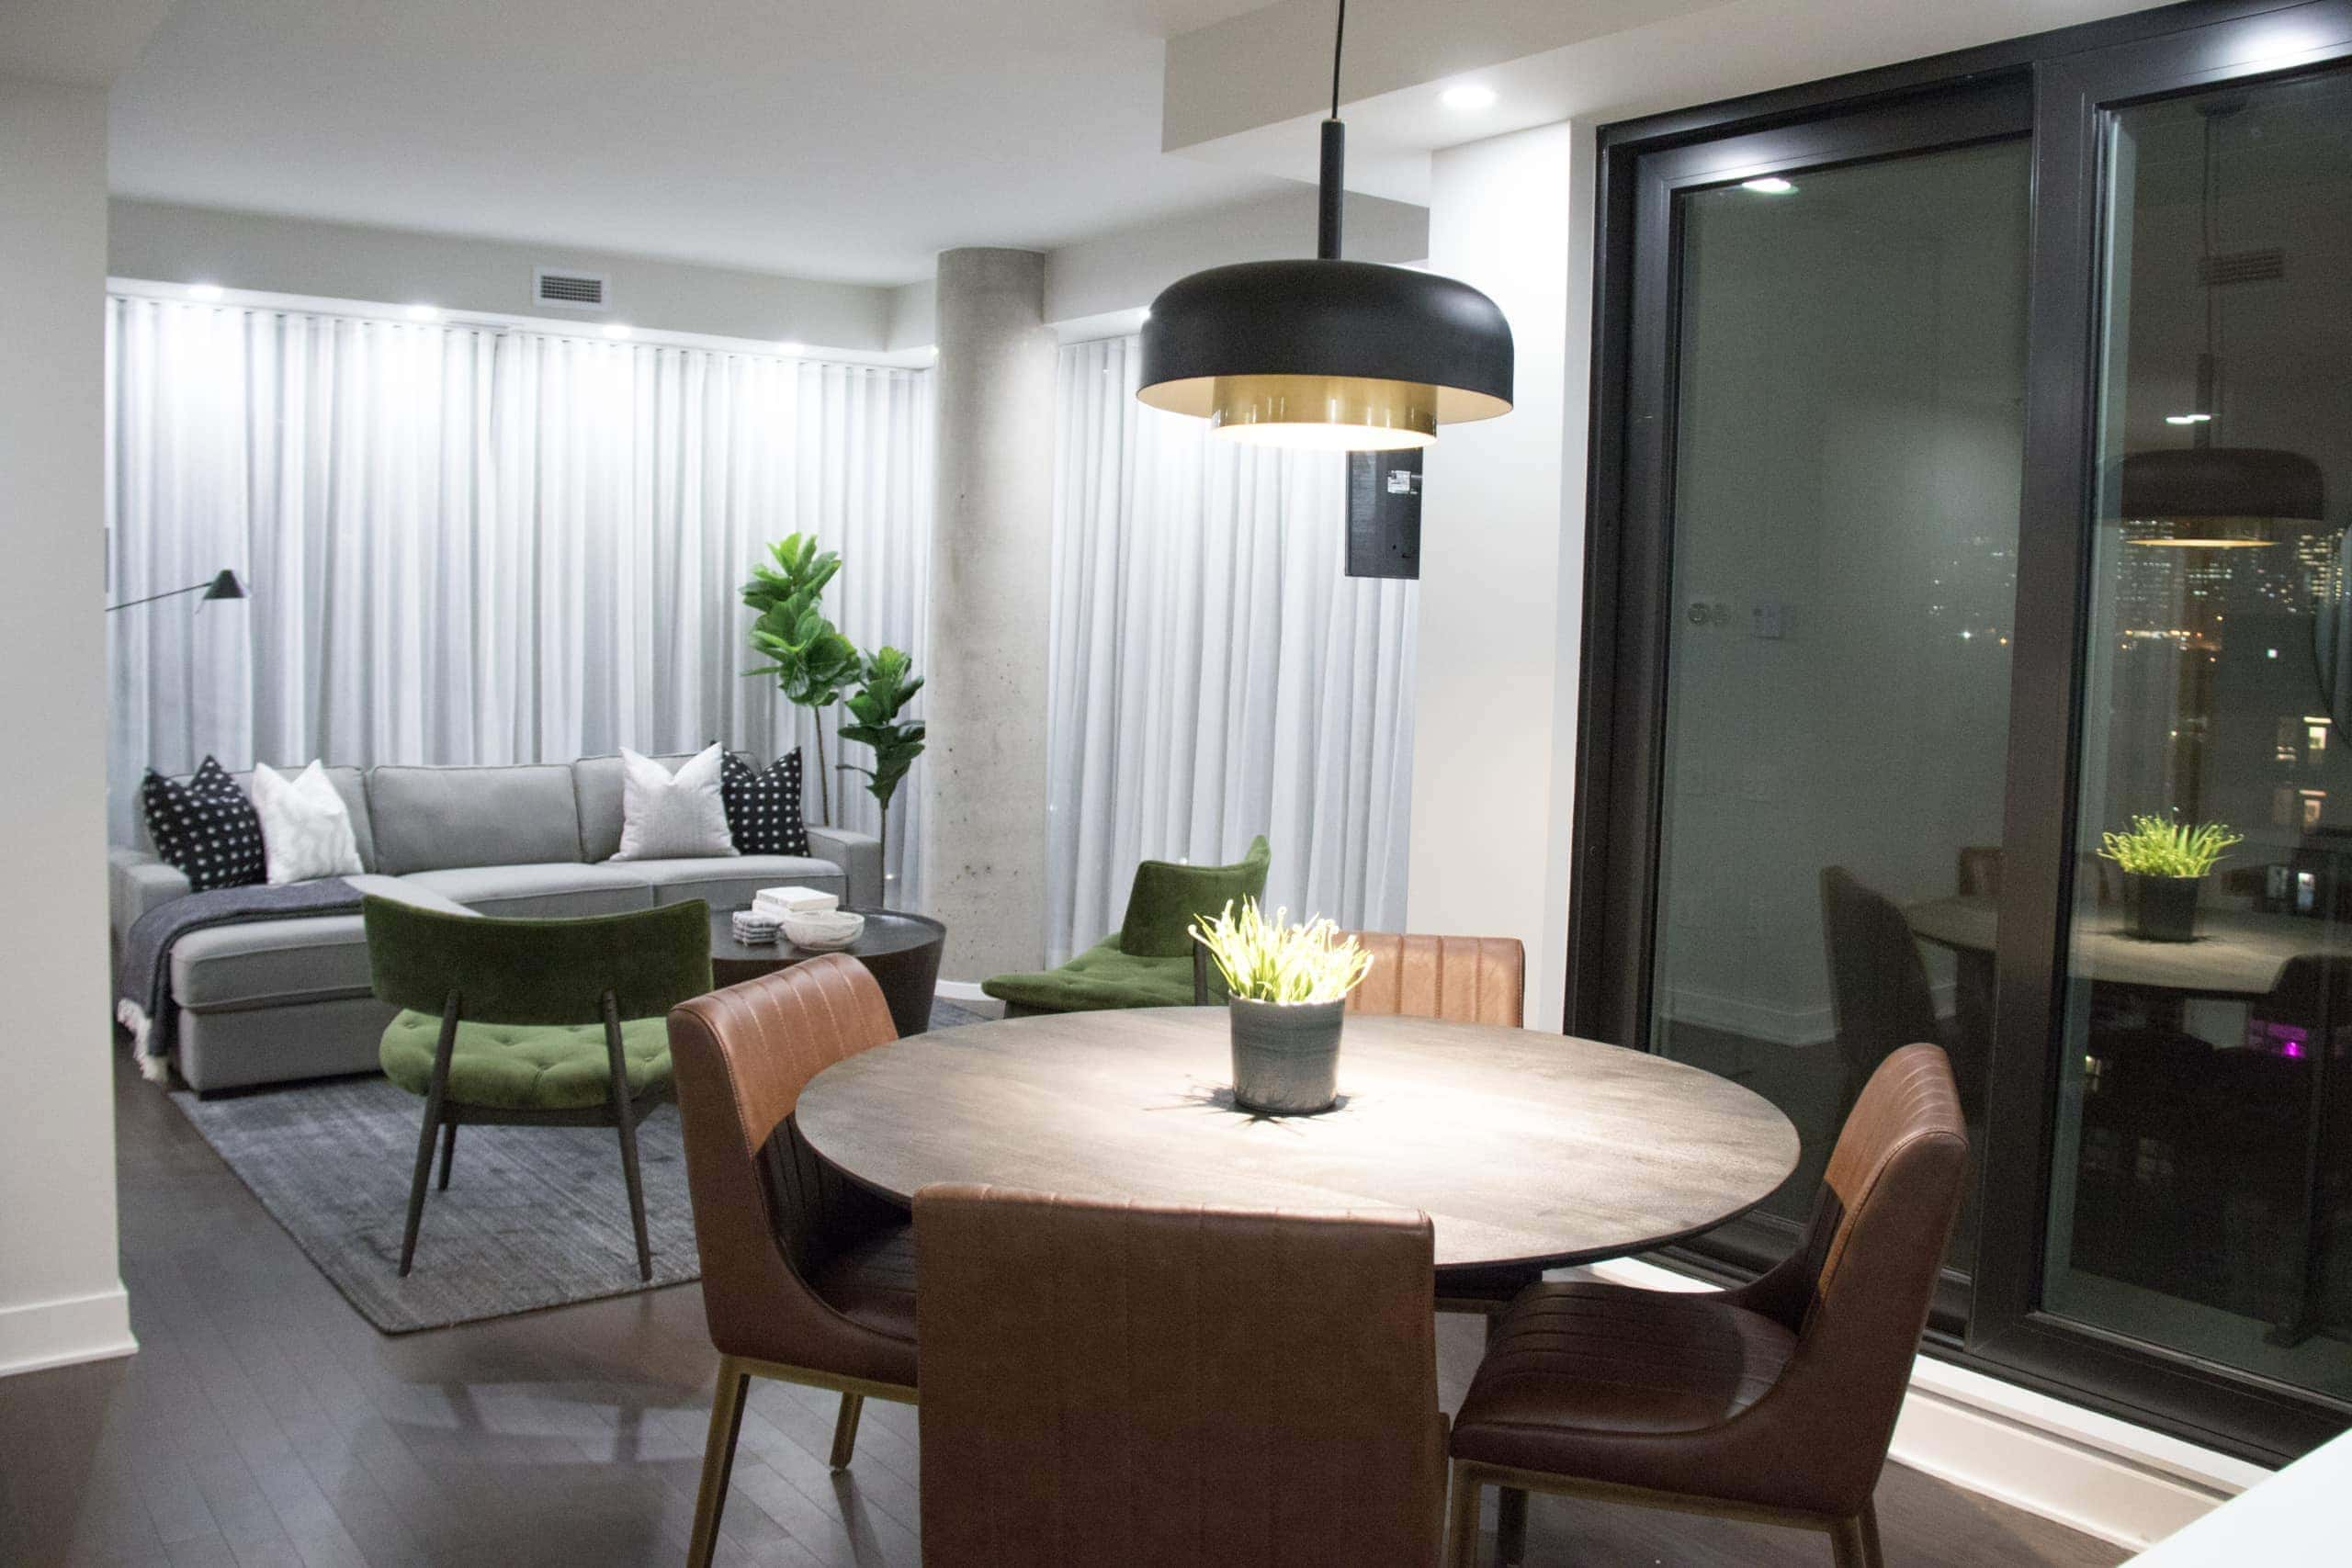 Small dinning room and living room open concept